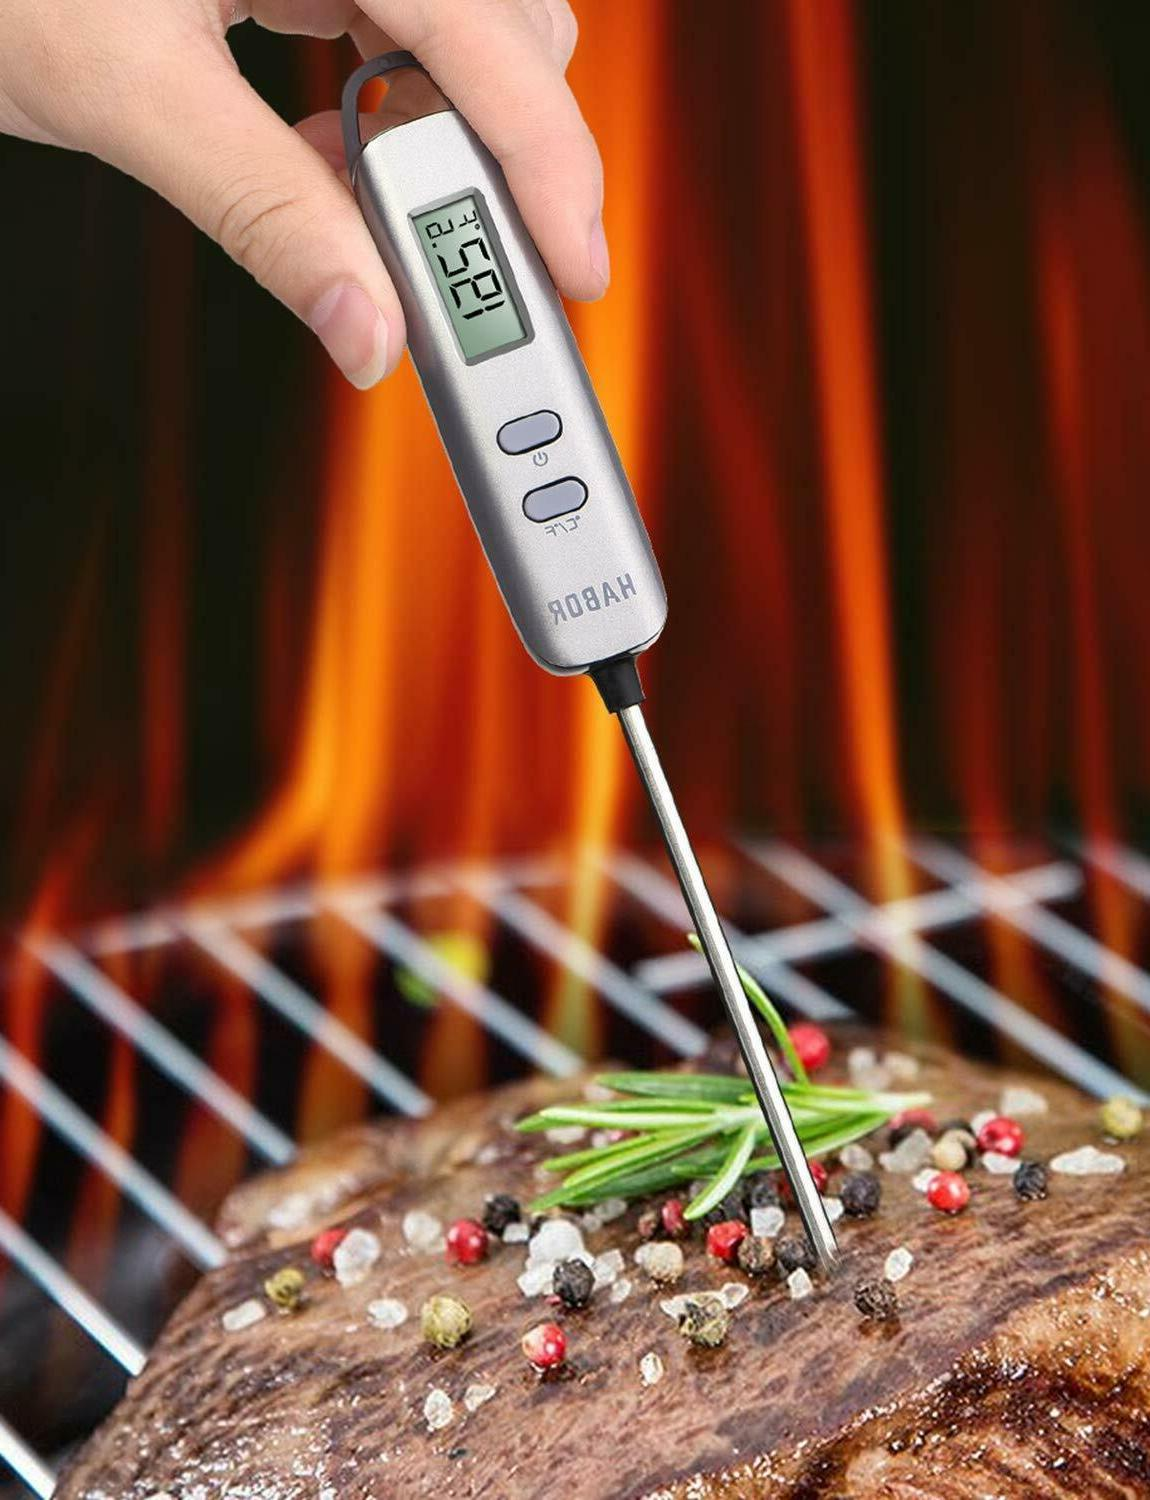 Habor Meat Digital Stainless Cooking Thermometer with 5 Sec